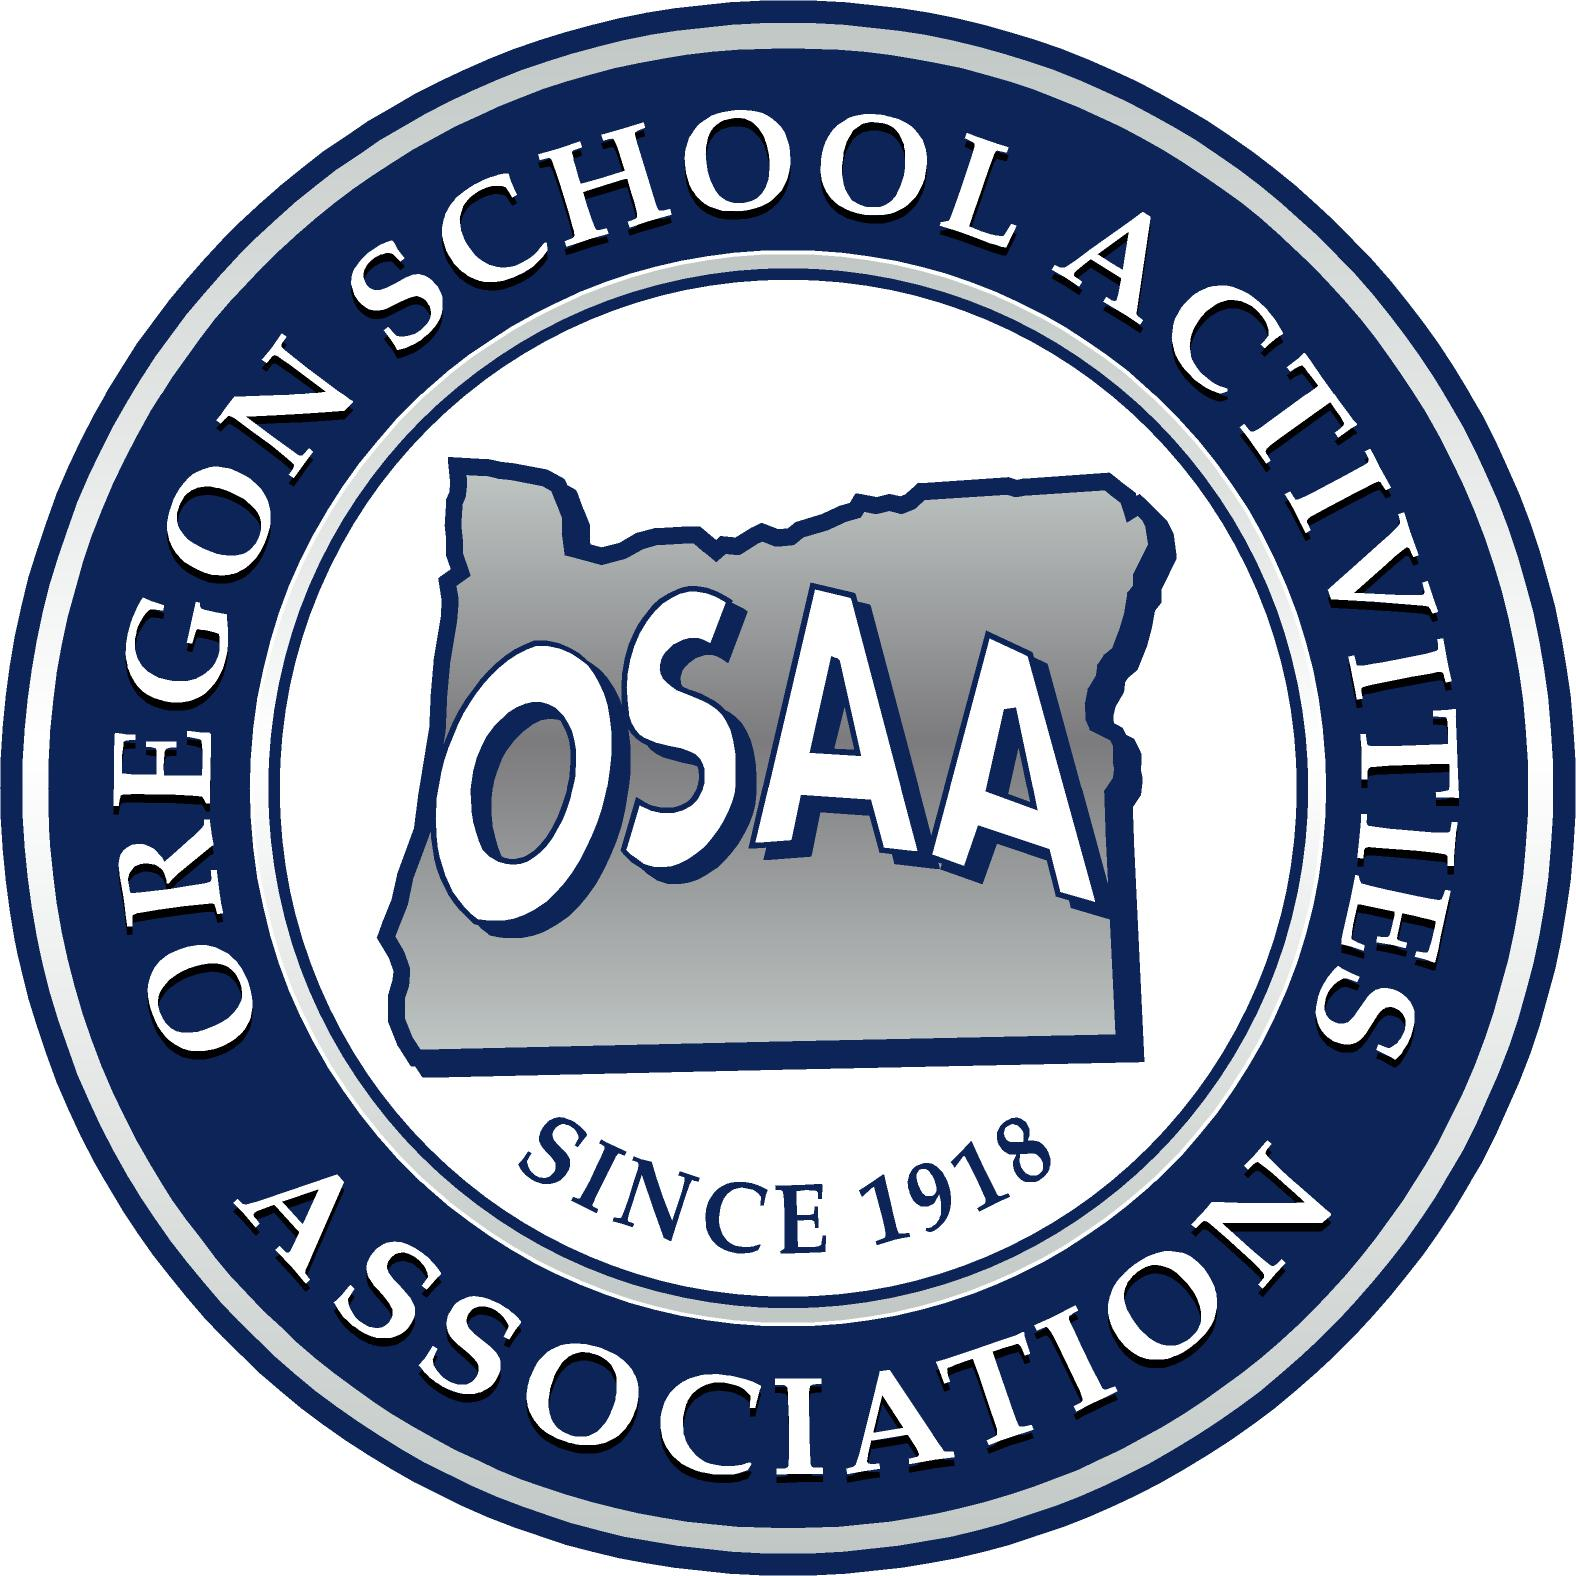 Click here for the Oregon Sports Activities Association website